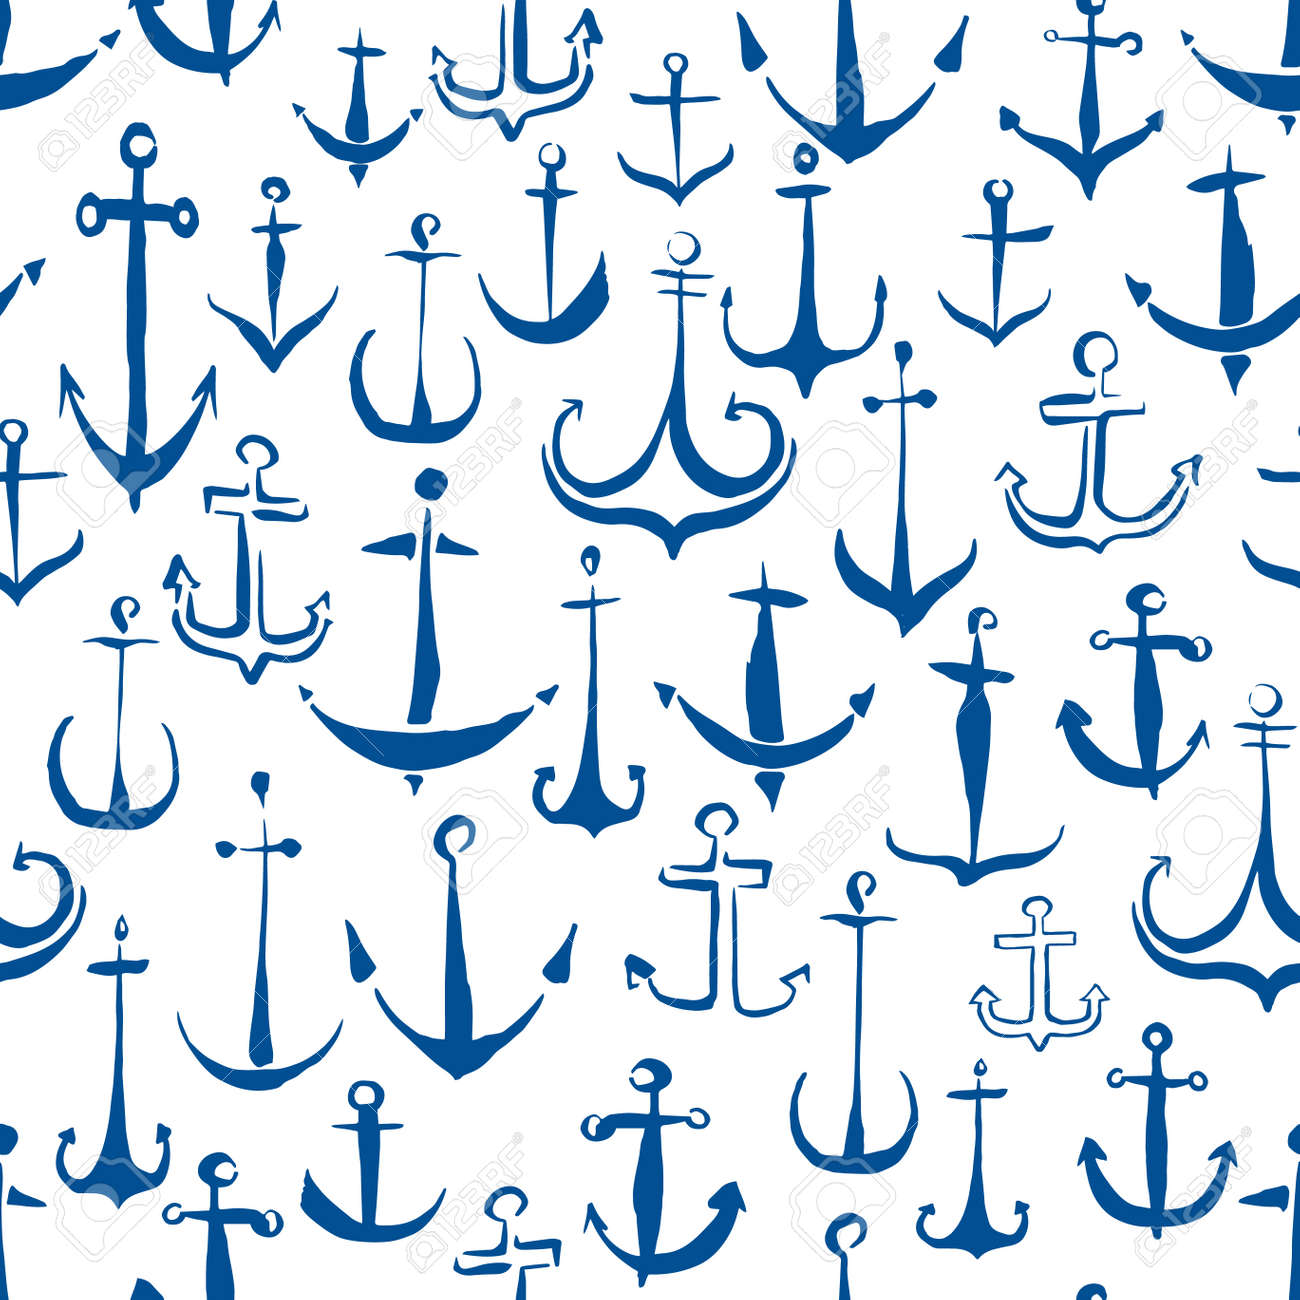 Anchors seamless pattern hand painted with ink brush - 164334467